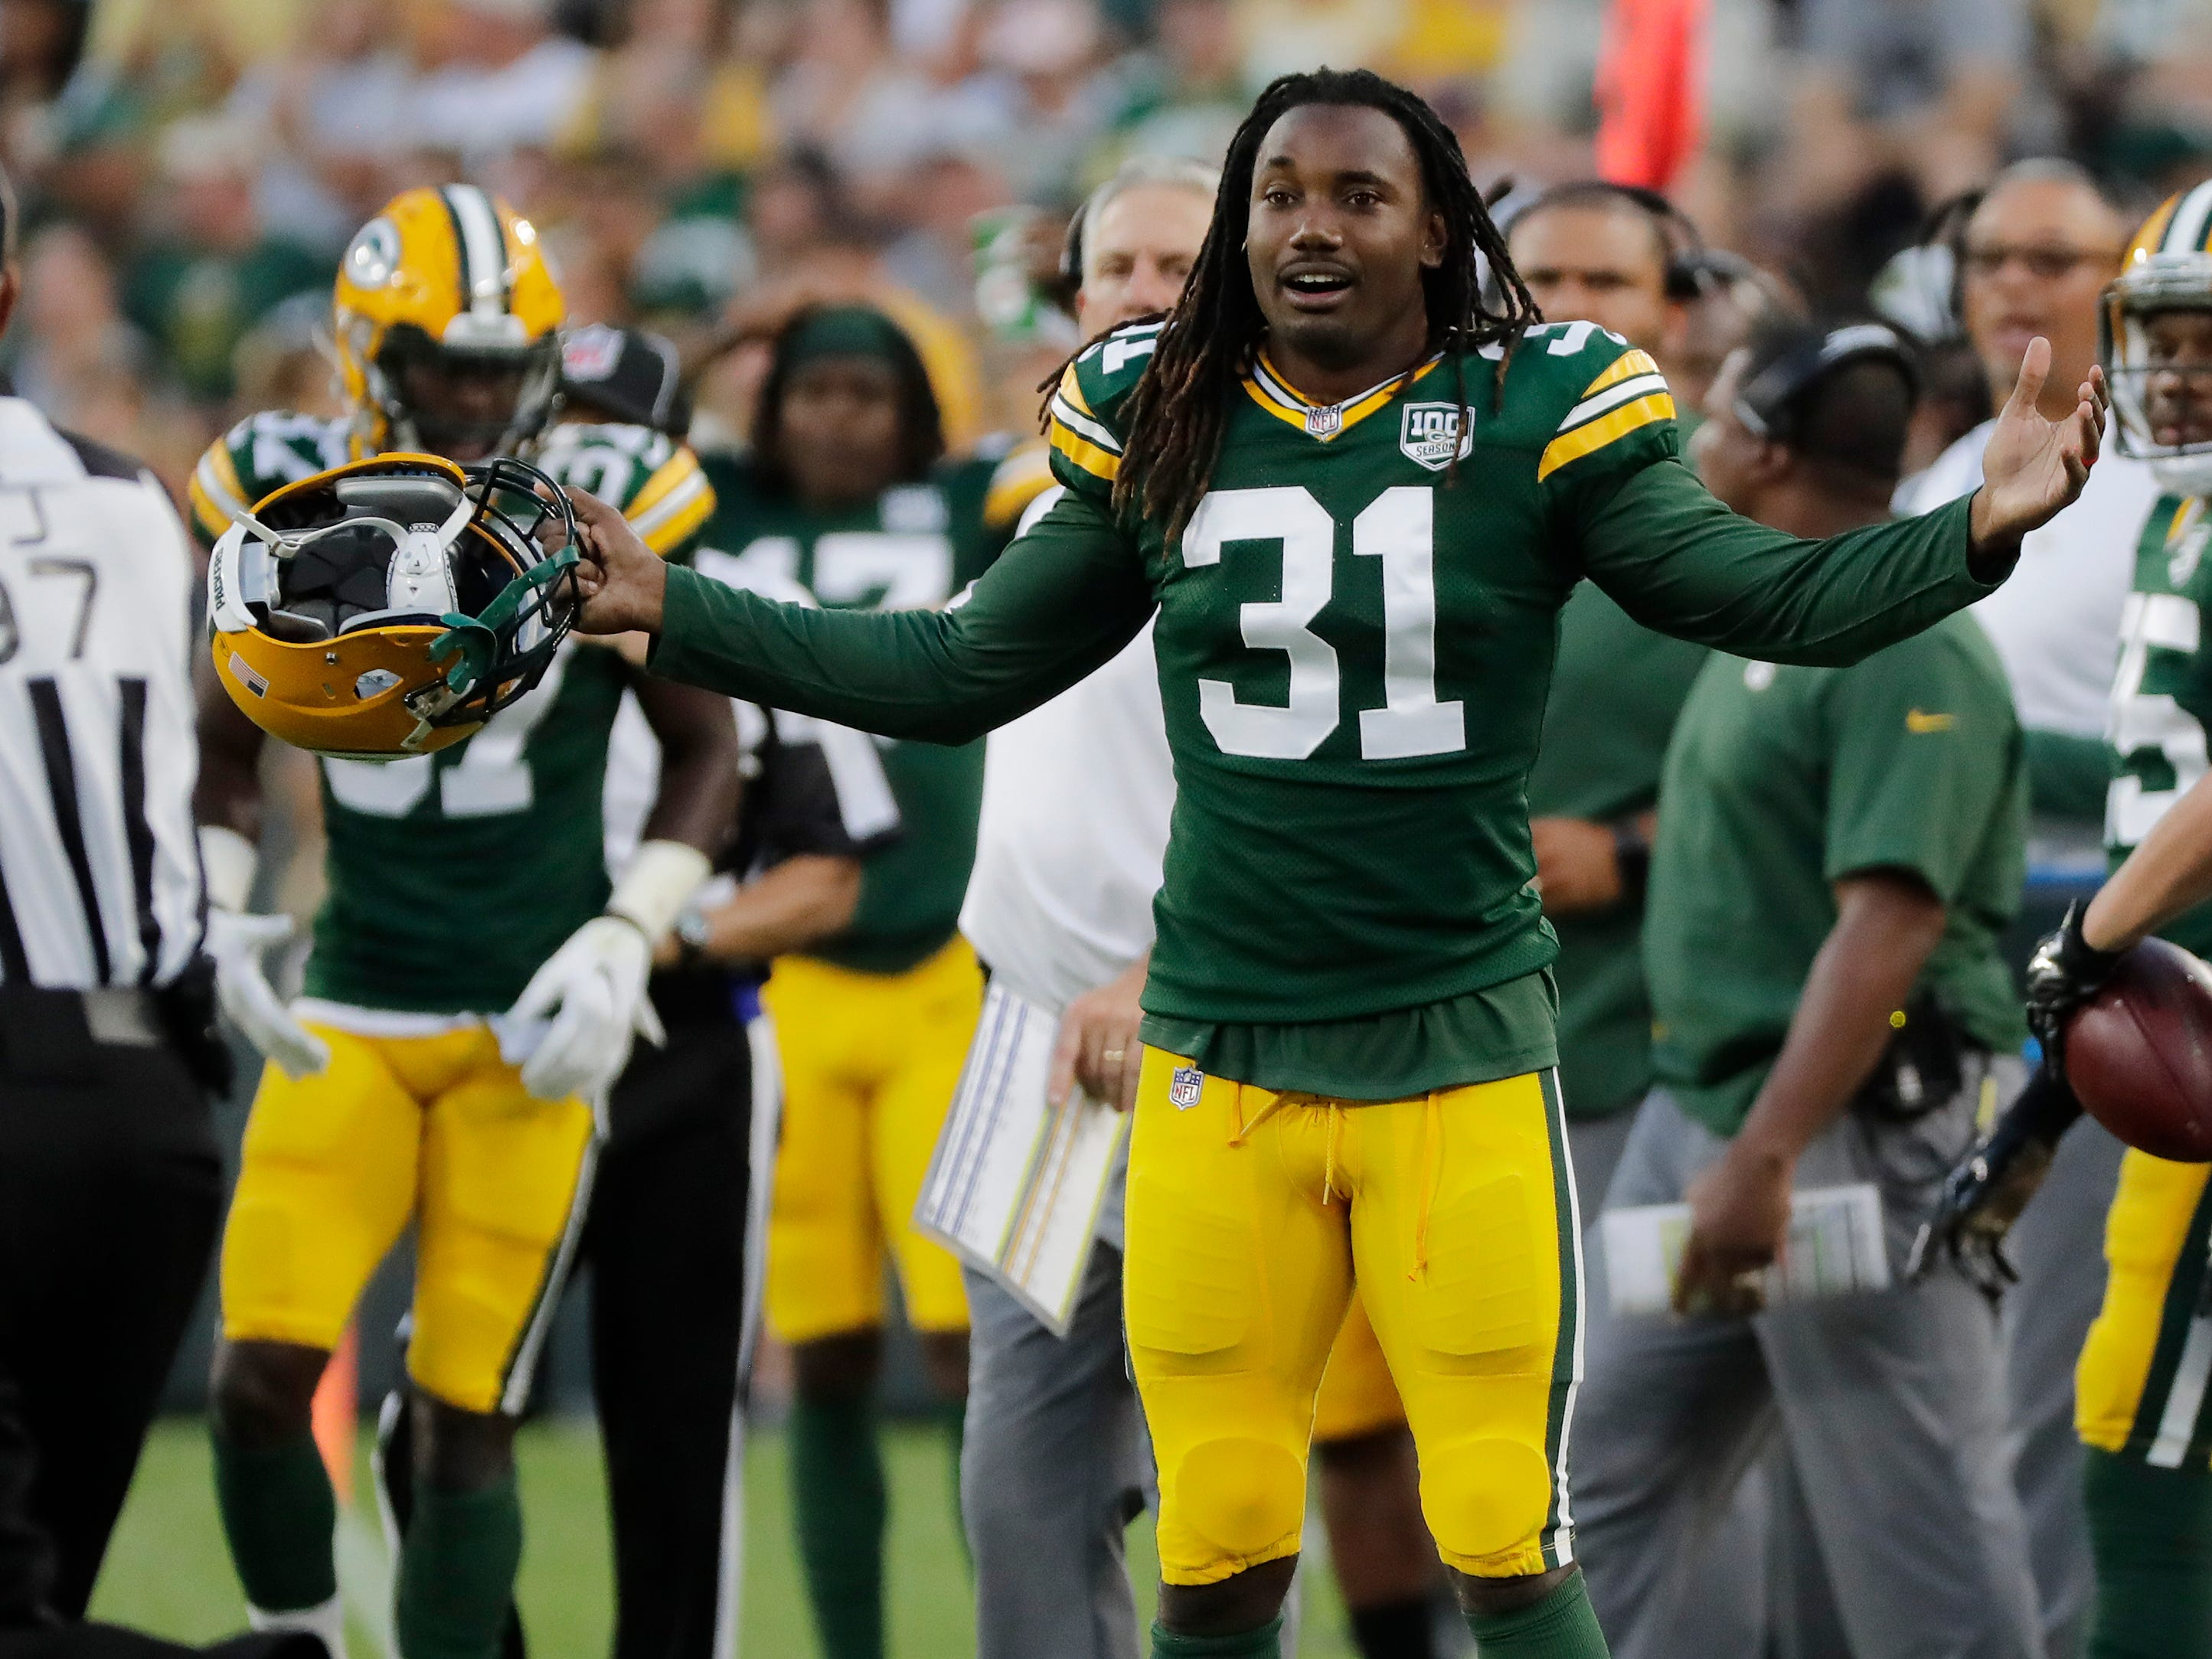 Green Bay Packers defensive back Davon House (31) reacts as the Packers are called for a penalty in the first half against the Tennessee Titans in an NFL preseason game at Lambeau Field on Thursday, August 9, 2018 in Green Bay, Wis.